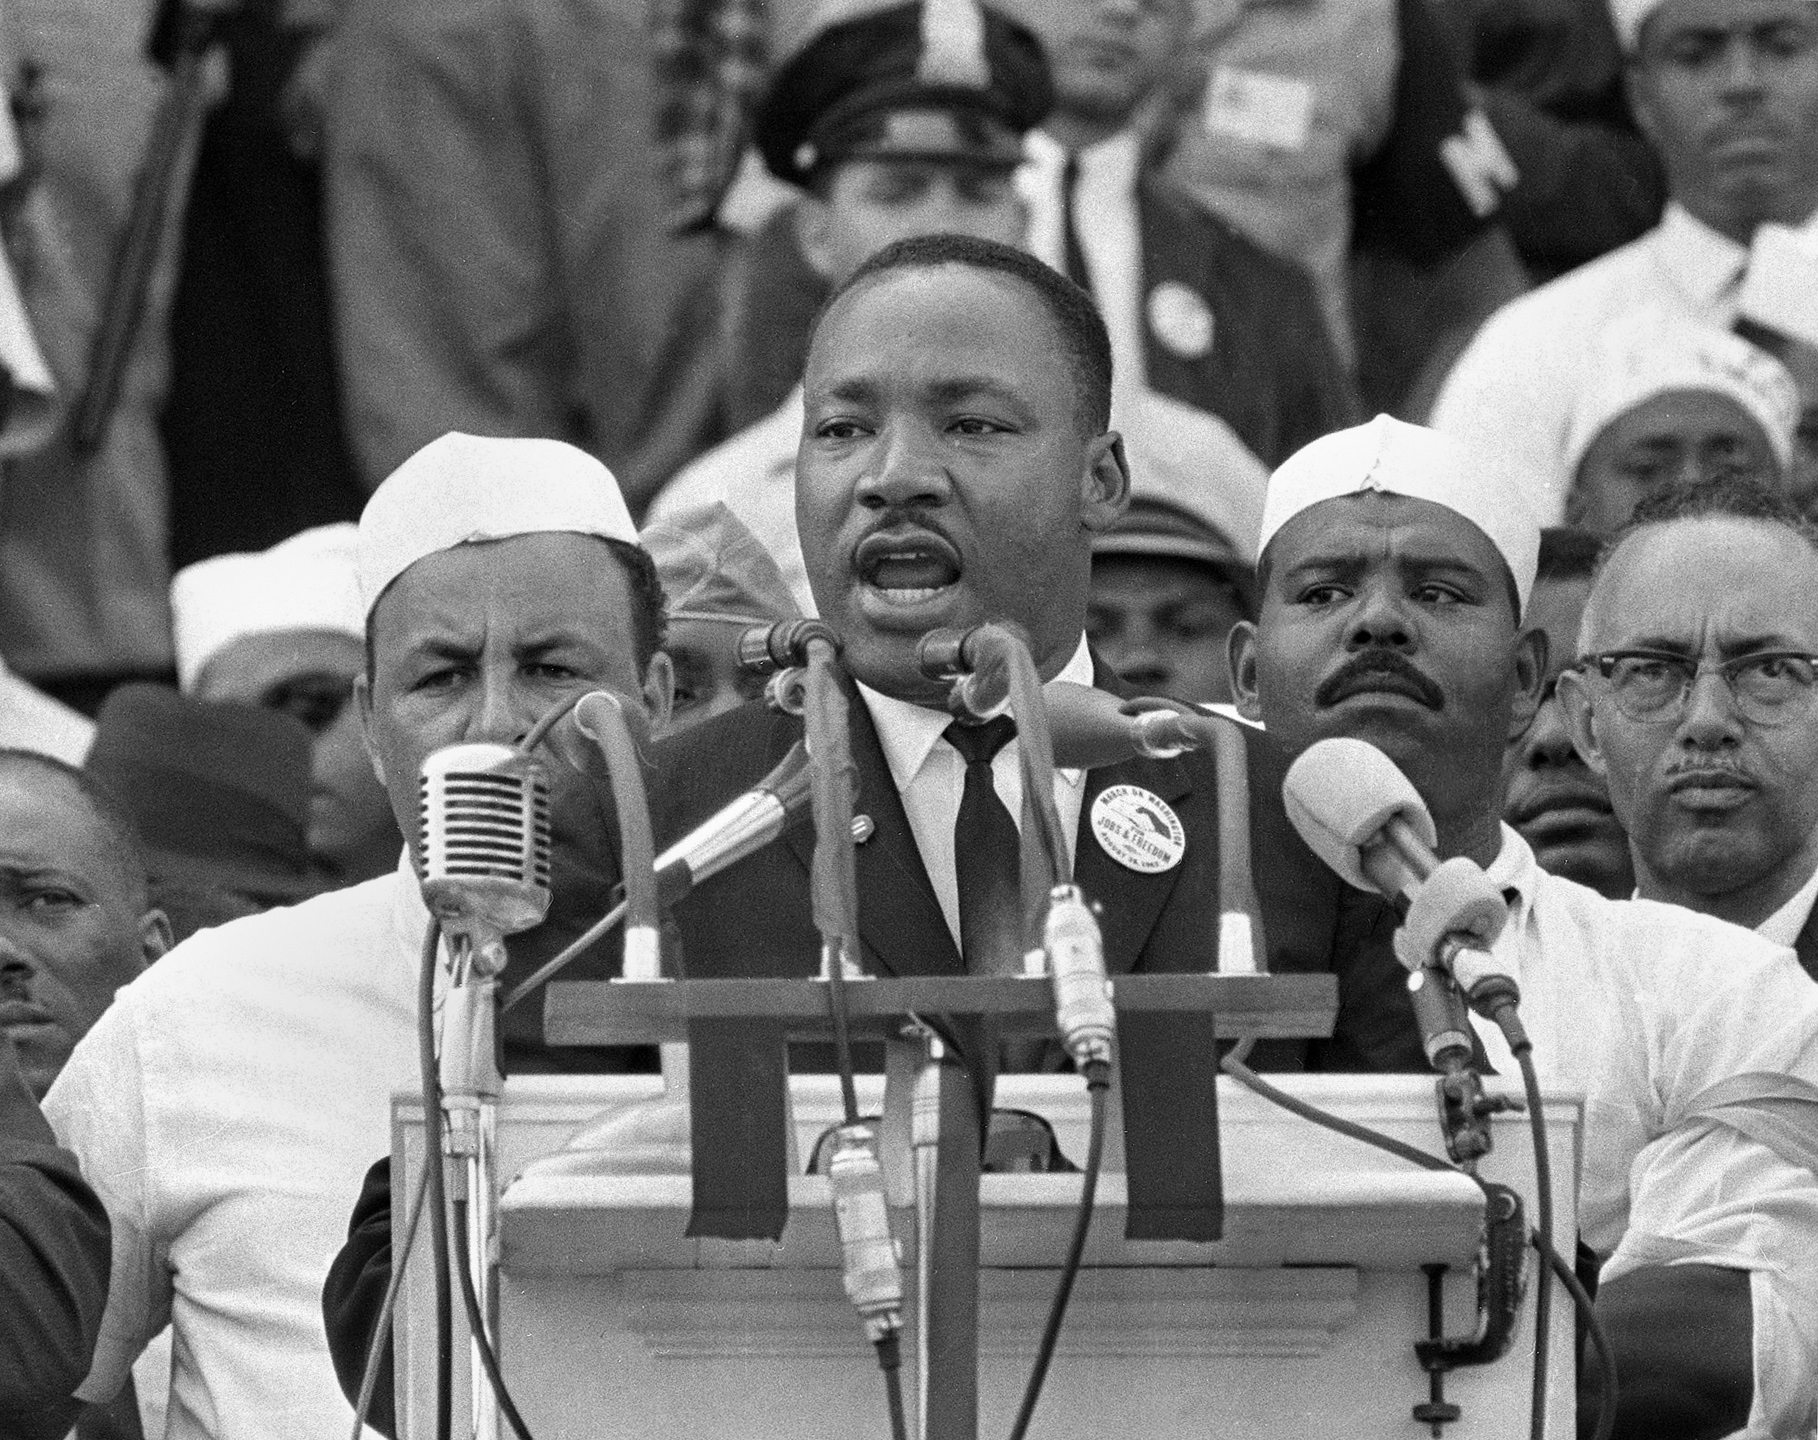 """Dr. Martin Luther King Jr. addresses marchers during his """"I Have a Dream"""" speech at the Lincoln Memorial in Washington in 1963."""